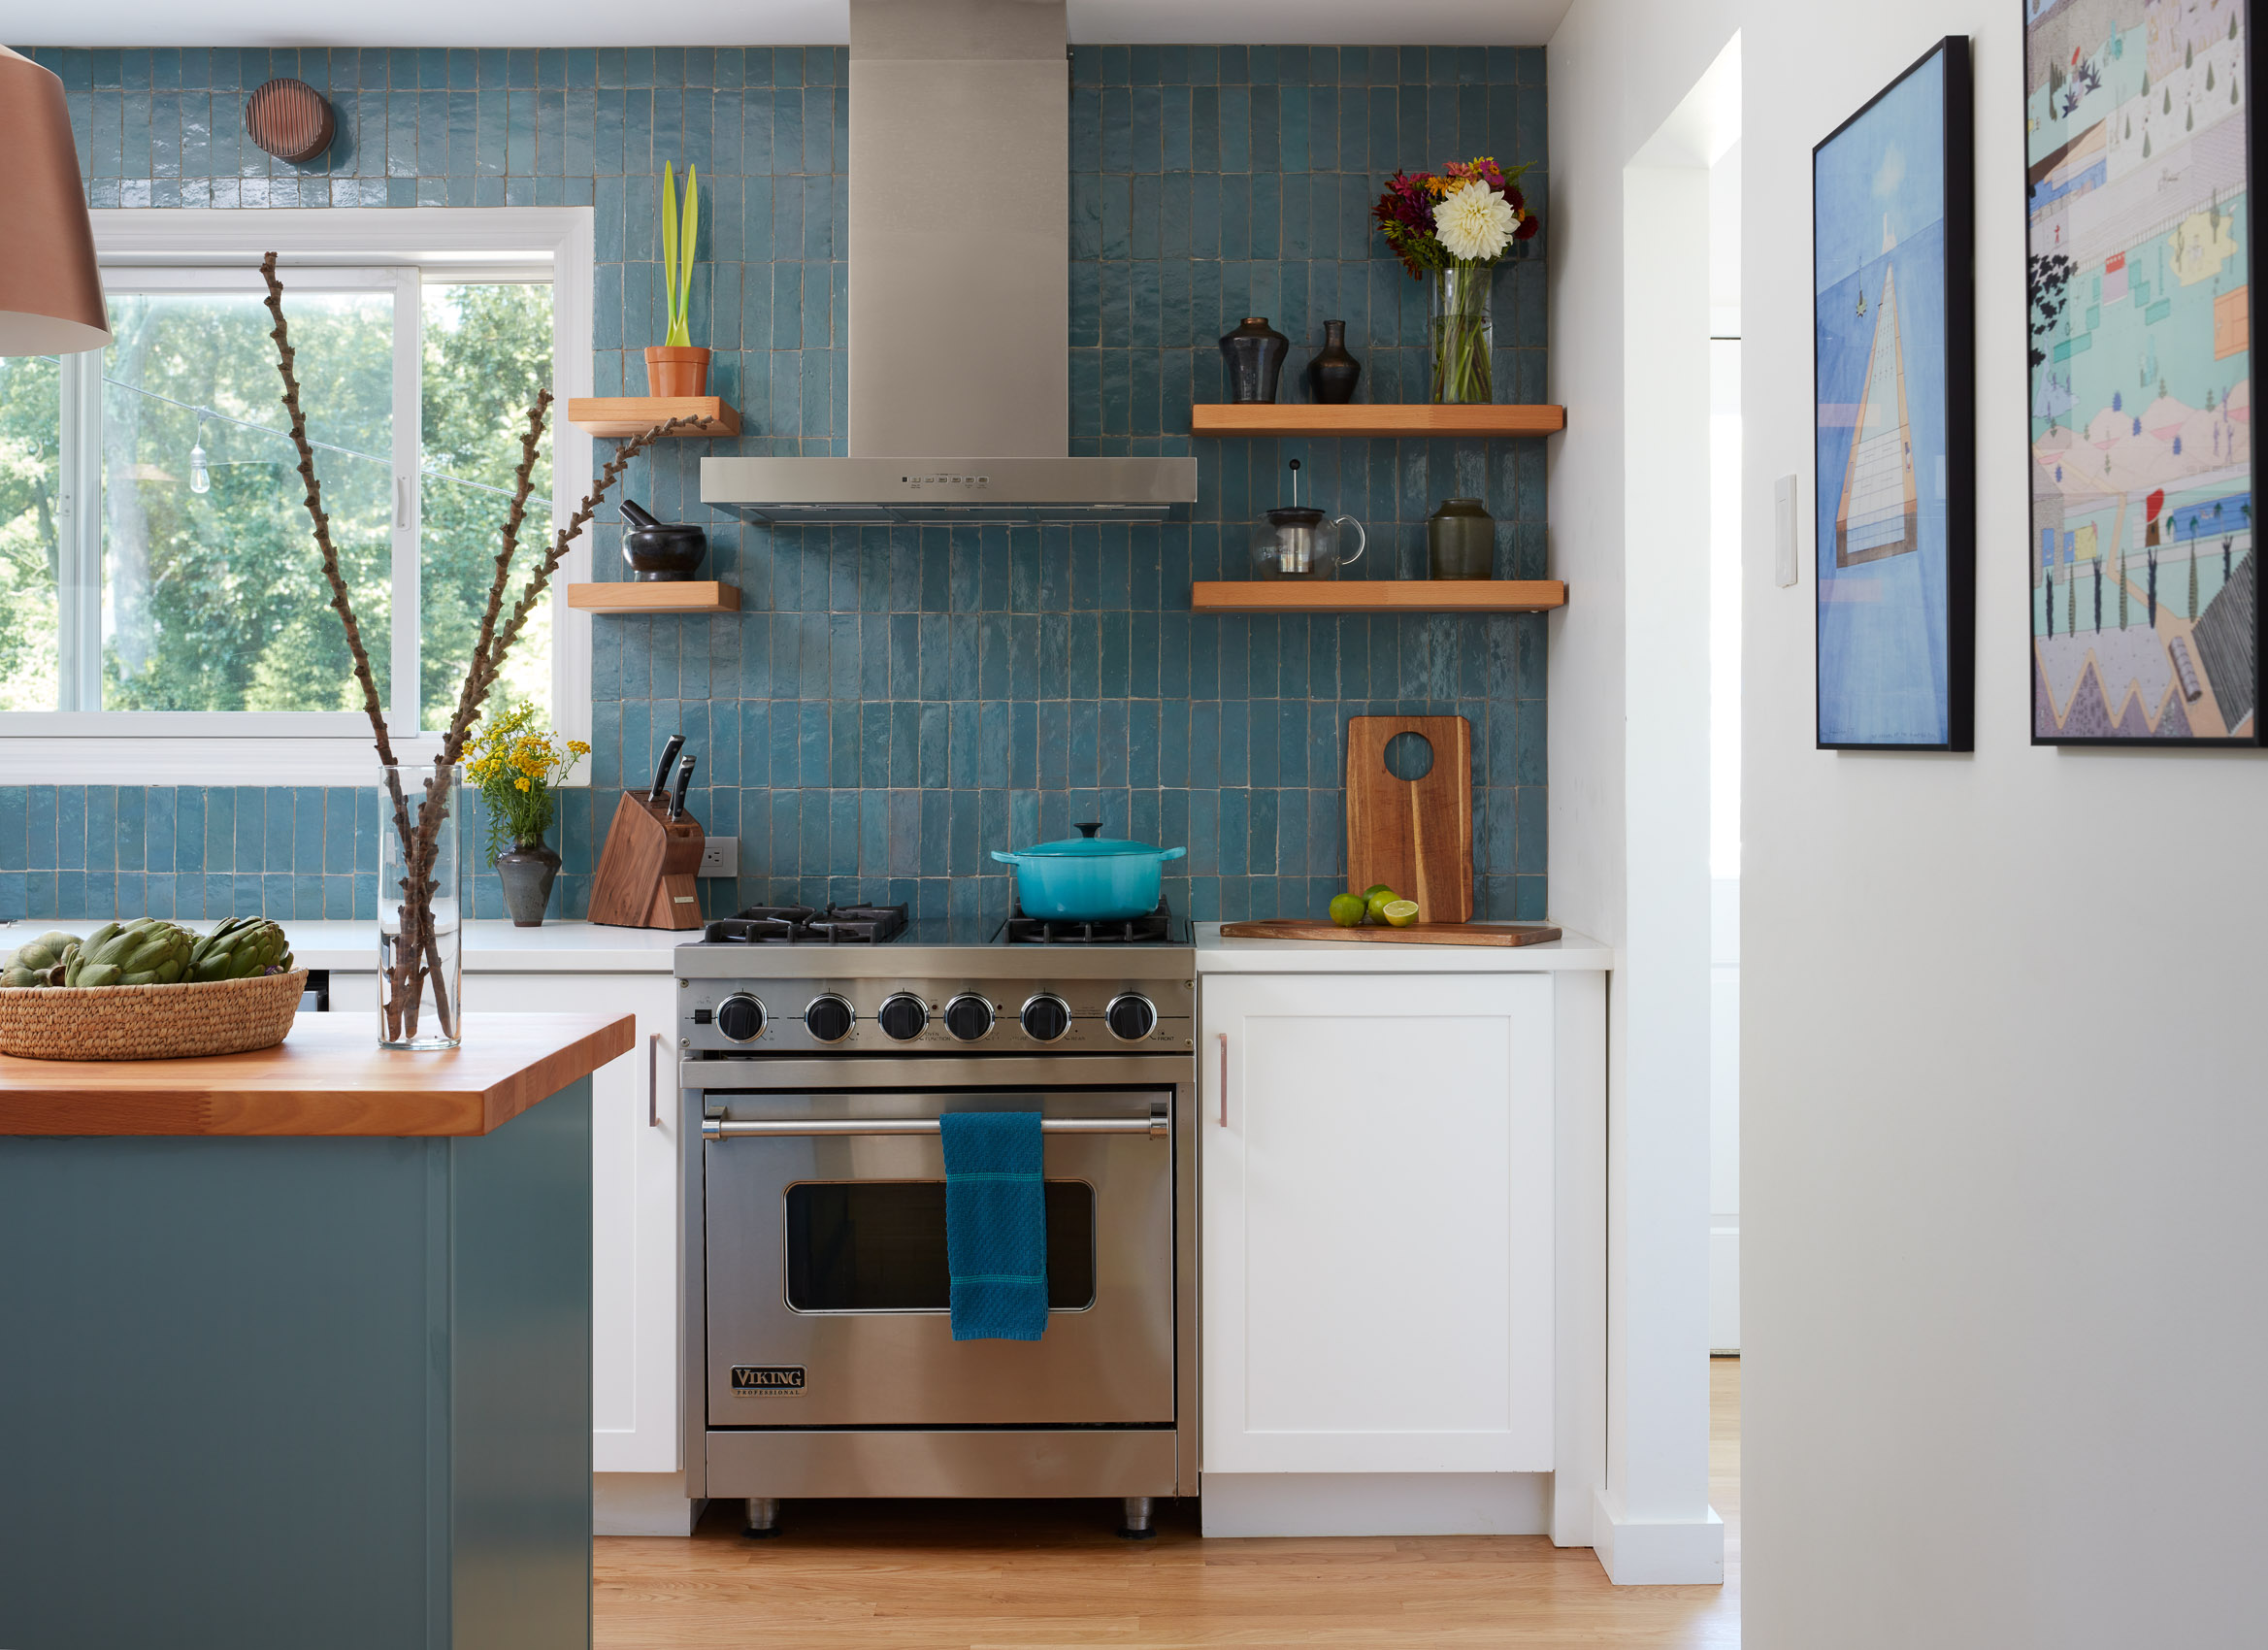 Miele appliances and a backsplash of hand-blown glass tile by Ann Sacks sit within walnut cabinetry with Jamison pulls; the island integrates a Space Theory countertop and Kallista faucet.